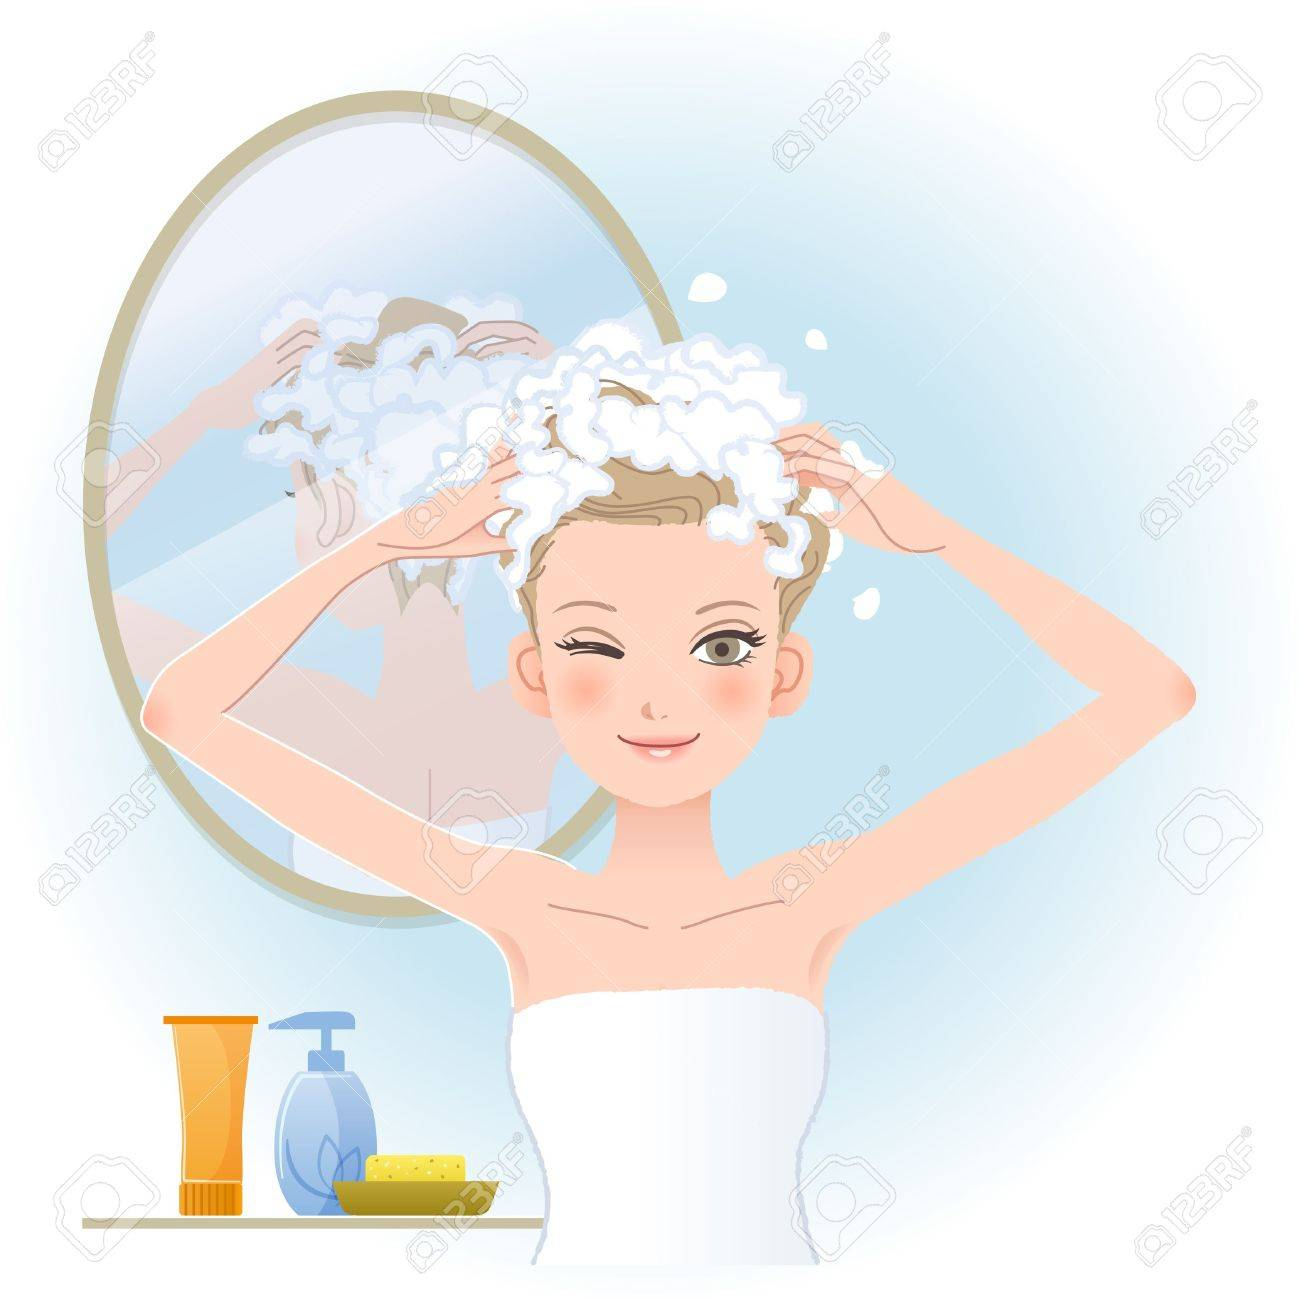 Pretty Woman Soaping Her Head With Mirror On The Back In Bathroom